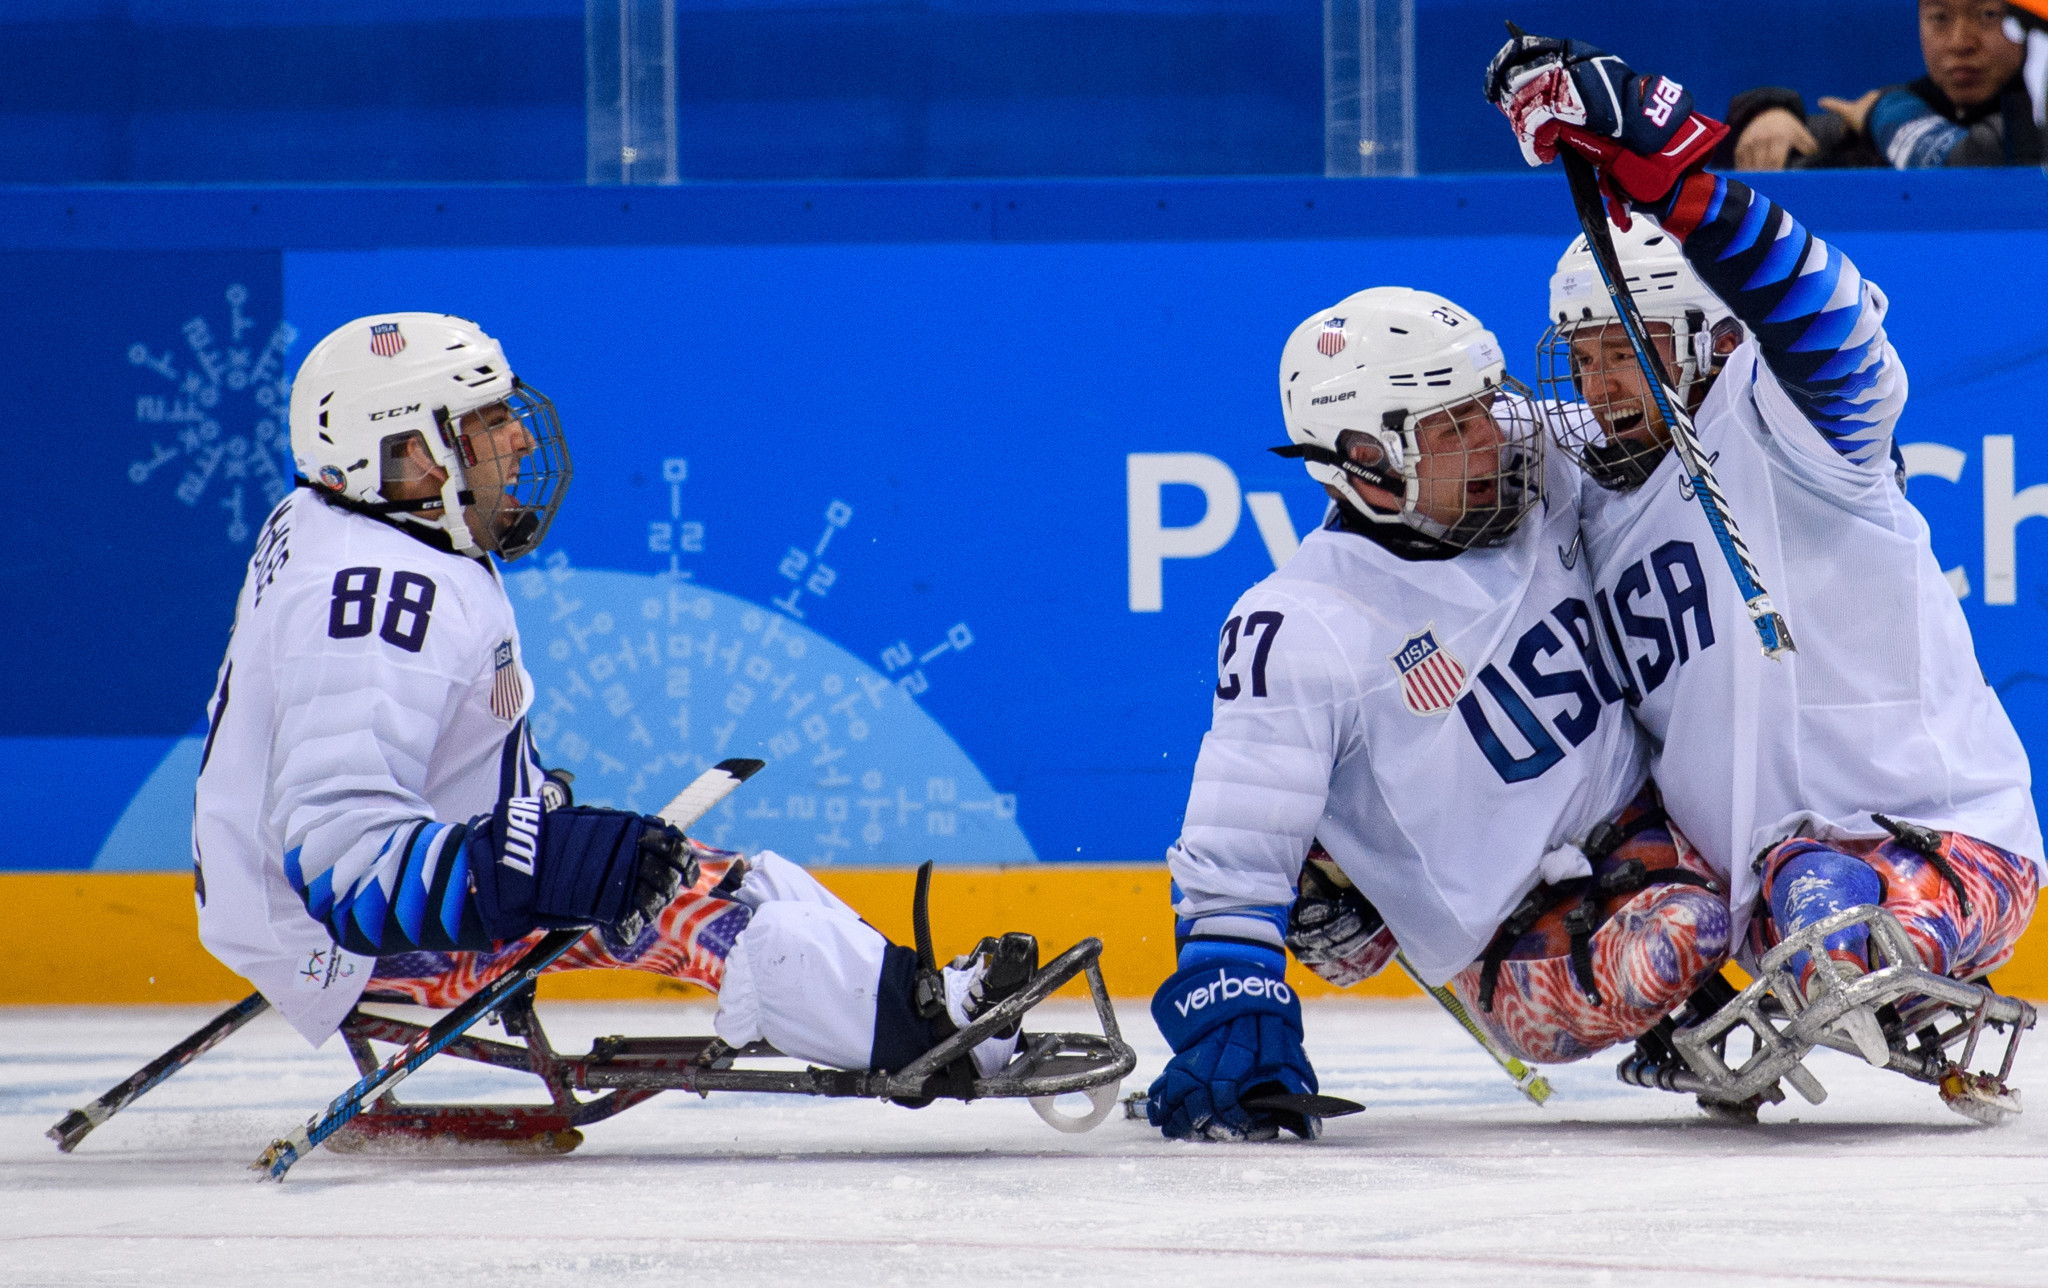 USA Hockey have announced their men's Para-ice hockey squad for the 2018-2019 season ©USA Hockey